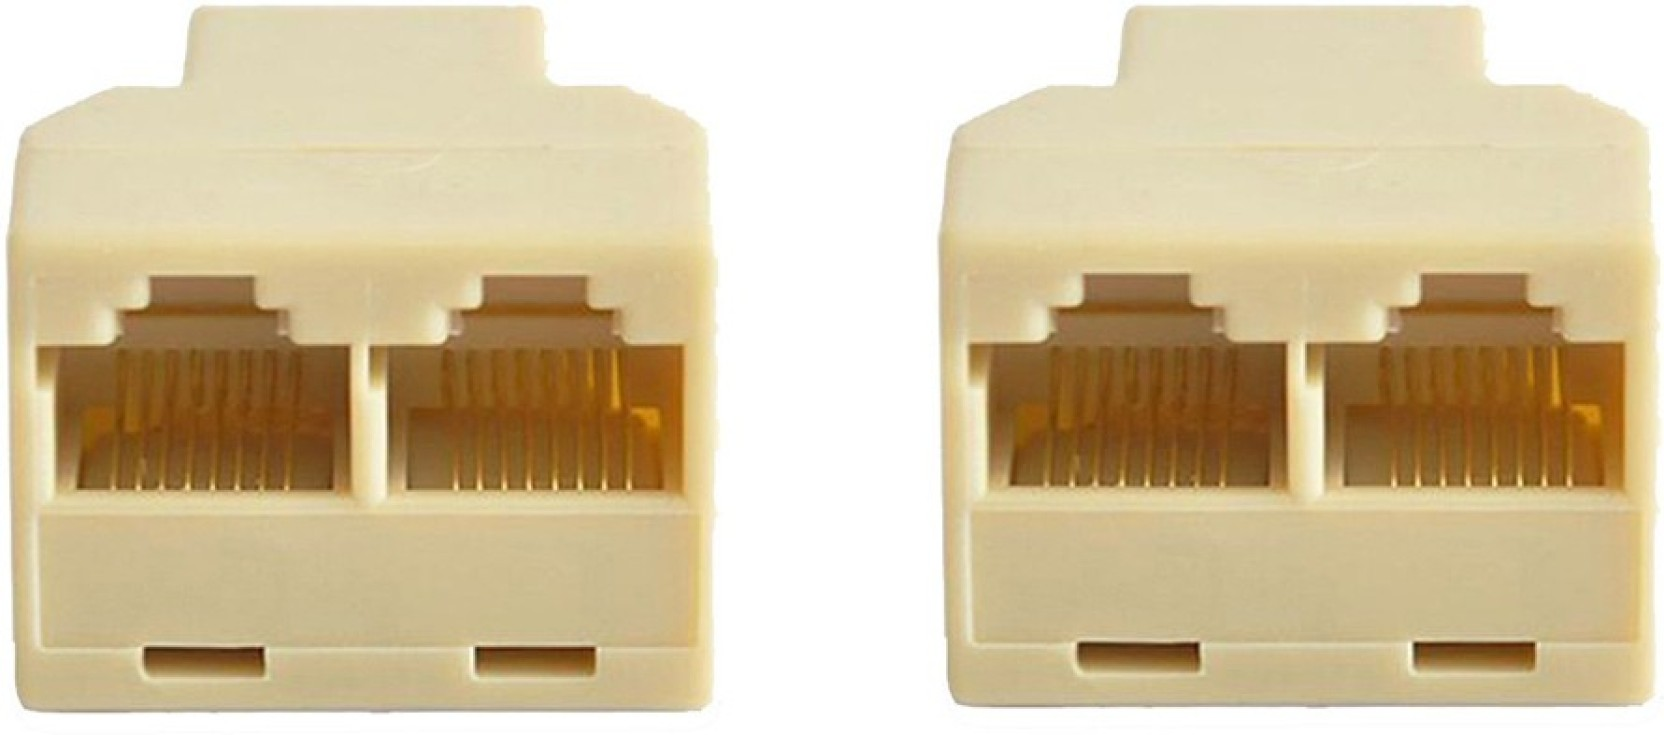 Acutas 2pcs Rj 45 Socket Rj45 Splitter Connector Cat5 Cat6 Lan Wiring Connectors Ethernet Adapter 8p8c Share